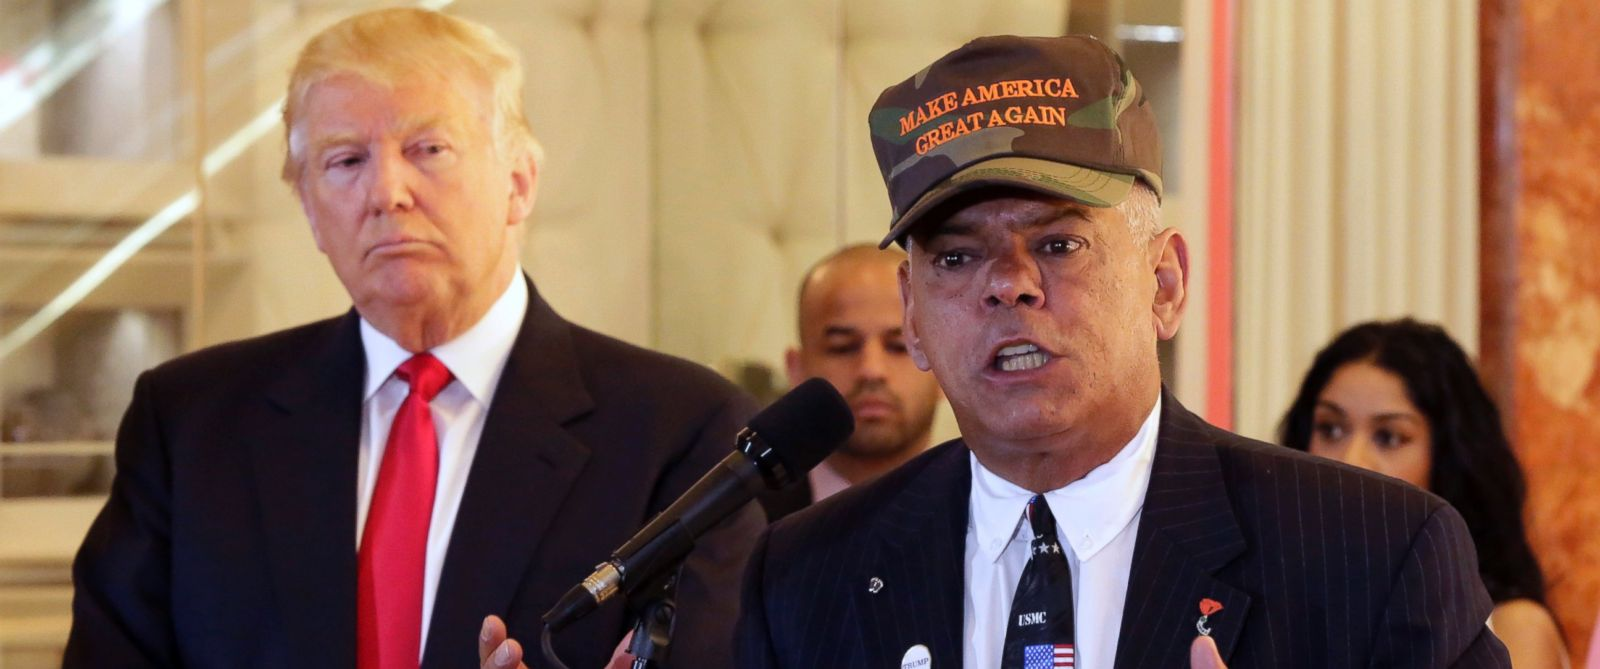 PHOTO: In this May 31, 2016, file photo, Republican presidential candidate Donald Trump listens at left as Al Baldasaro, a New Hampshire state representative, speaks during a news conference in New York.